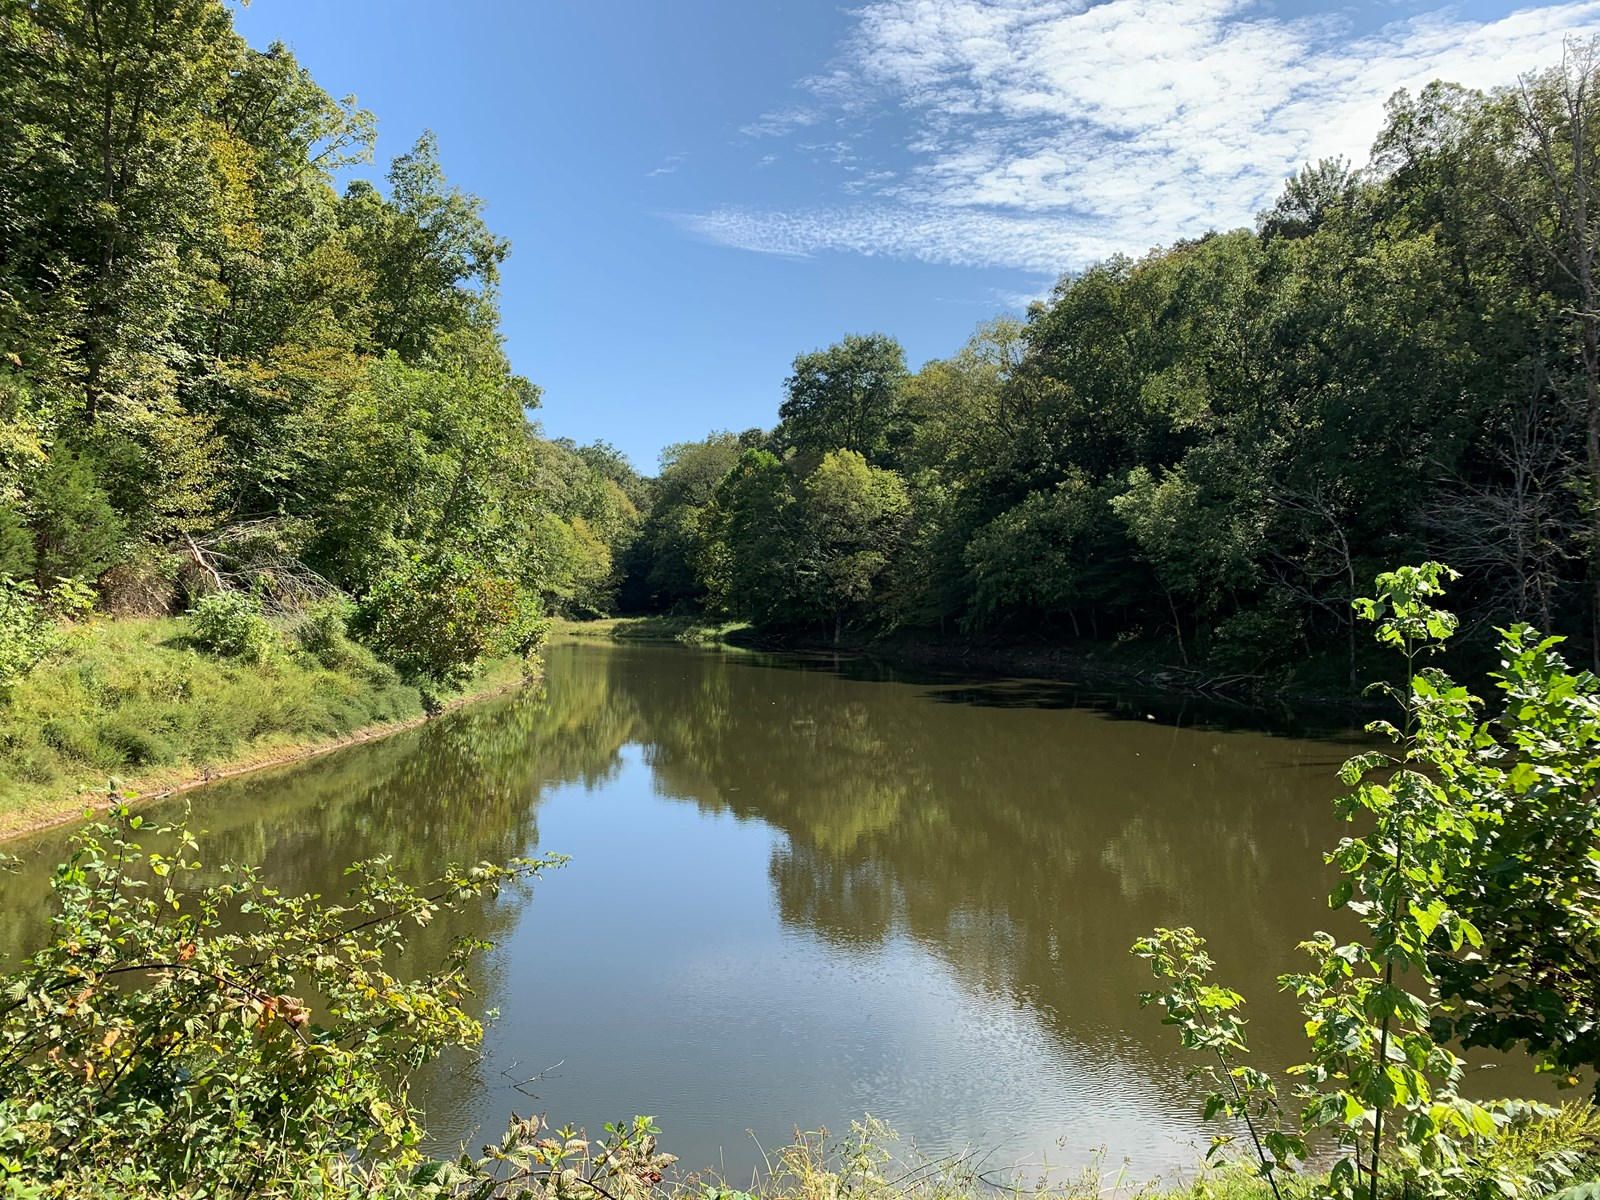 Land for sale in TN with Spring fed pond & building spots